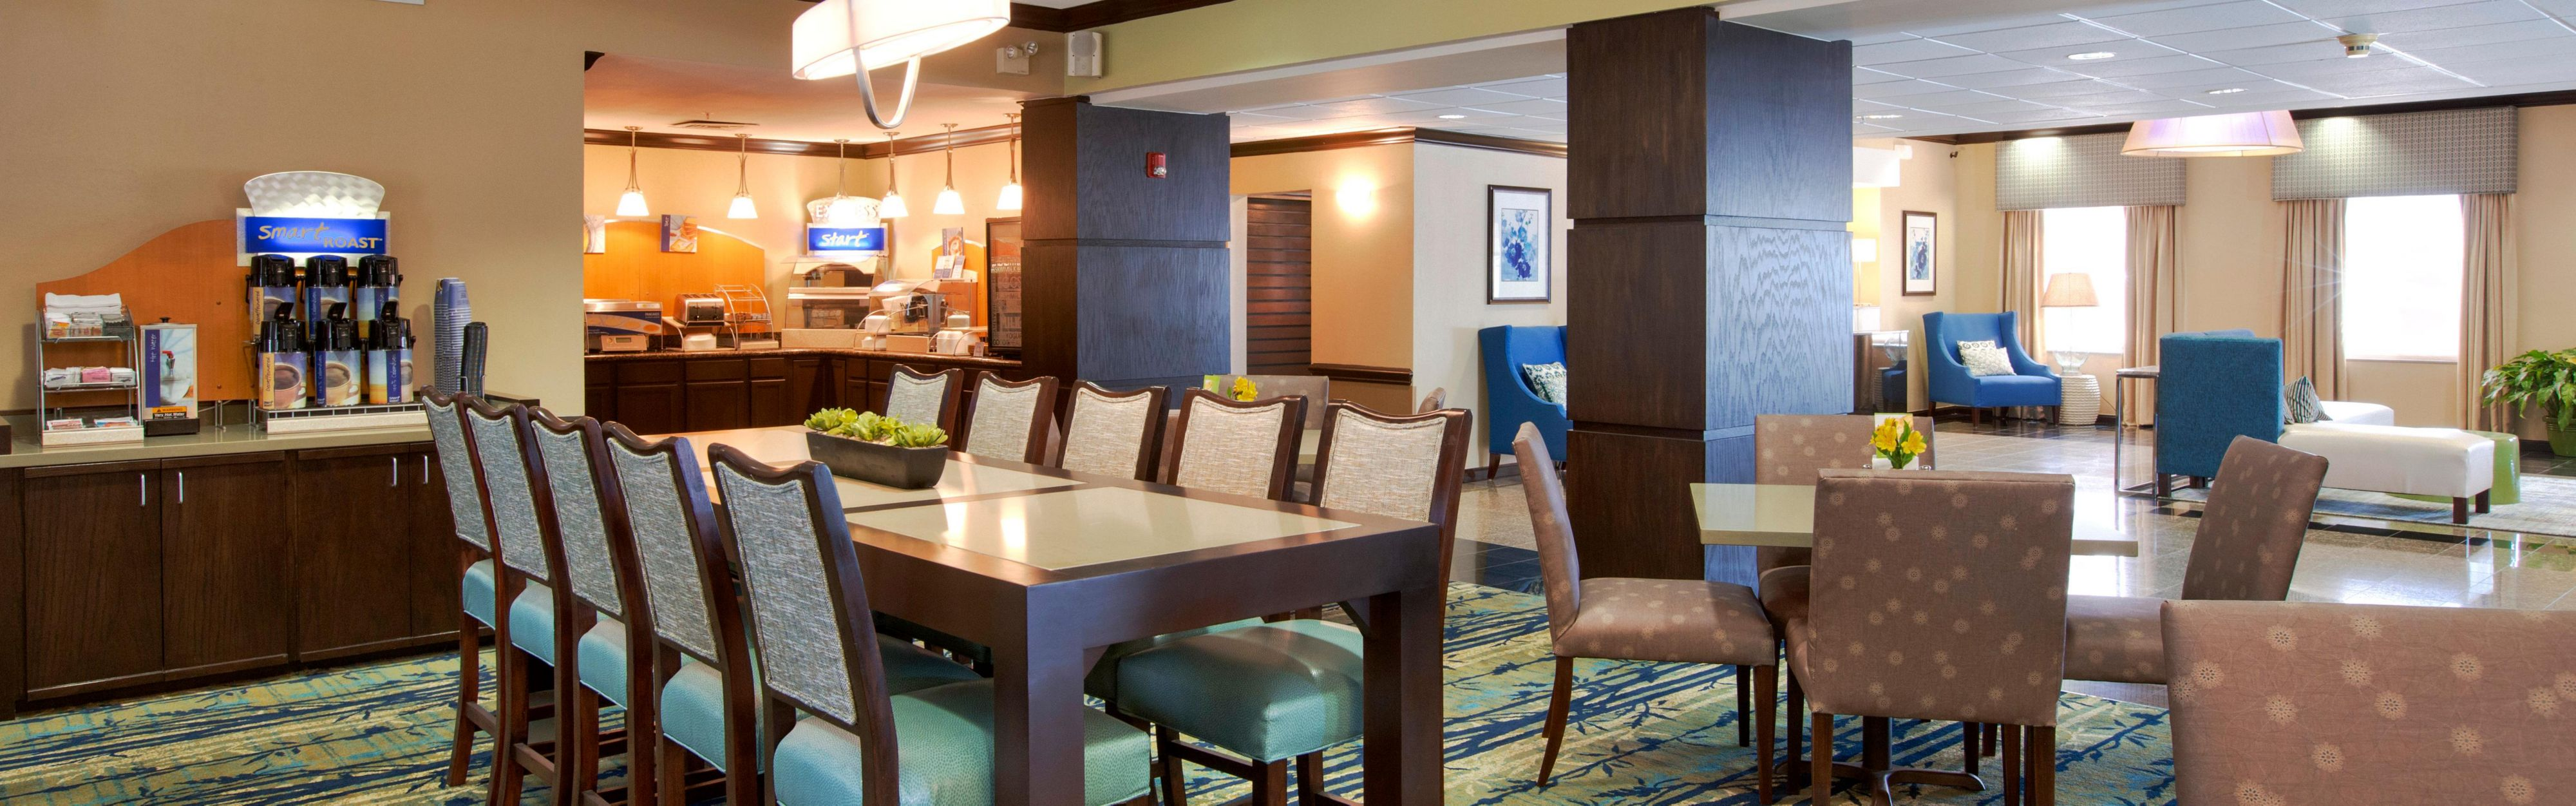 Holiday Inn Express & Suites Houston North-Spring Area image 3